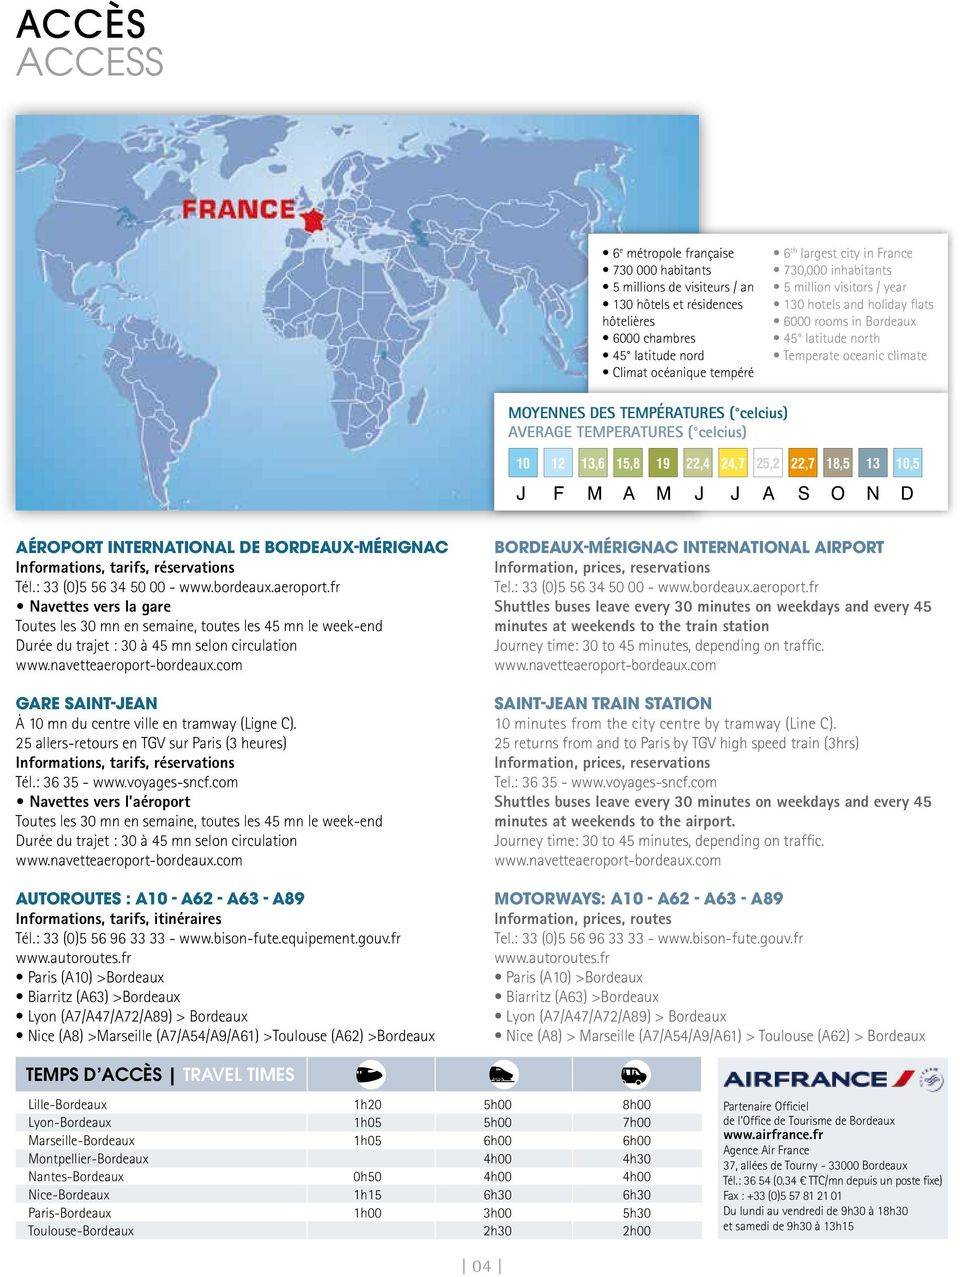 TEMPERATURES ( celcius) 10 12 13,6 15,8 19 22,4 24,7 25,2 22,7 18,5 13 10,5 J F M A M J J A S O N D AÉROPORT INTERNATIONAL DE BORDEAUX-MÉRIGNAC Informations, tarifs, réservations Tél.